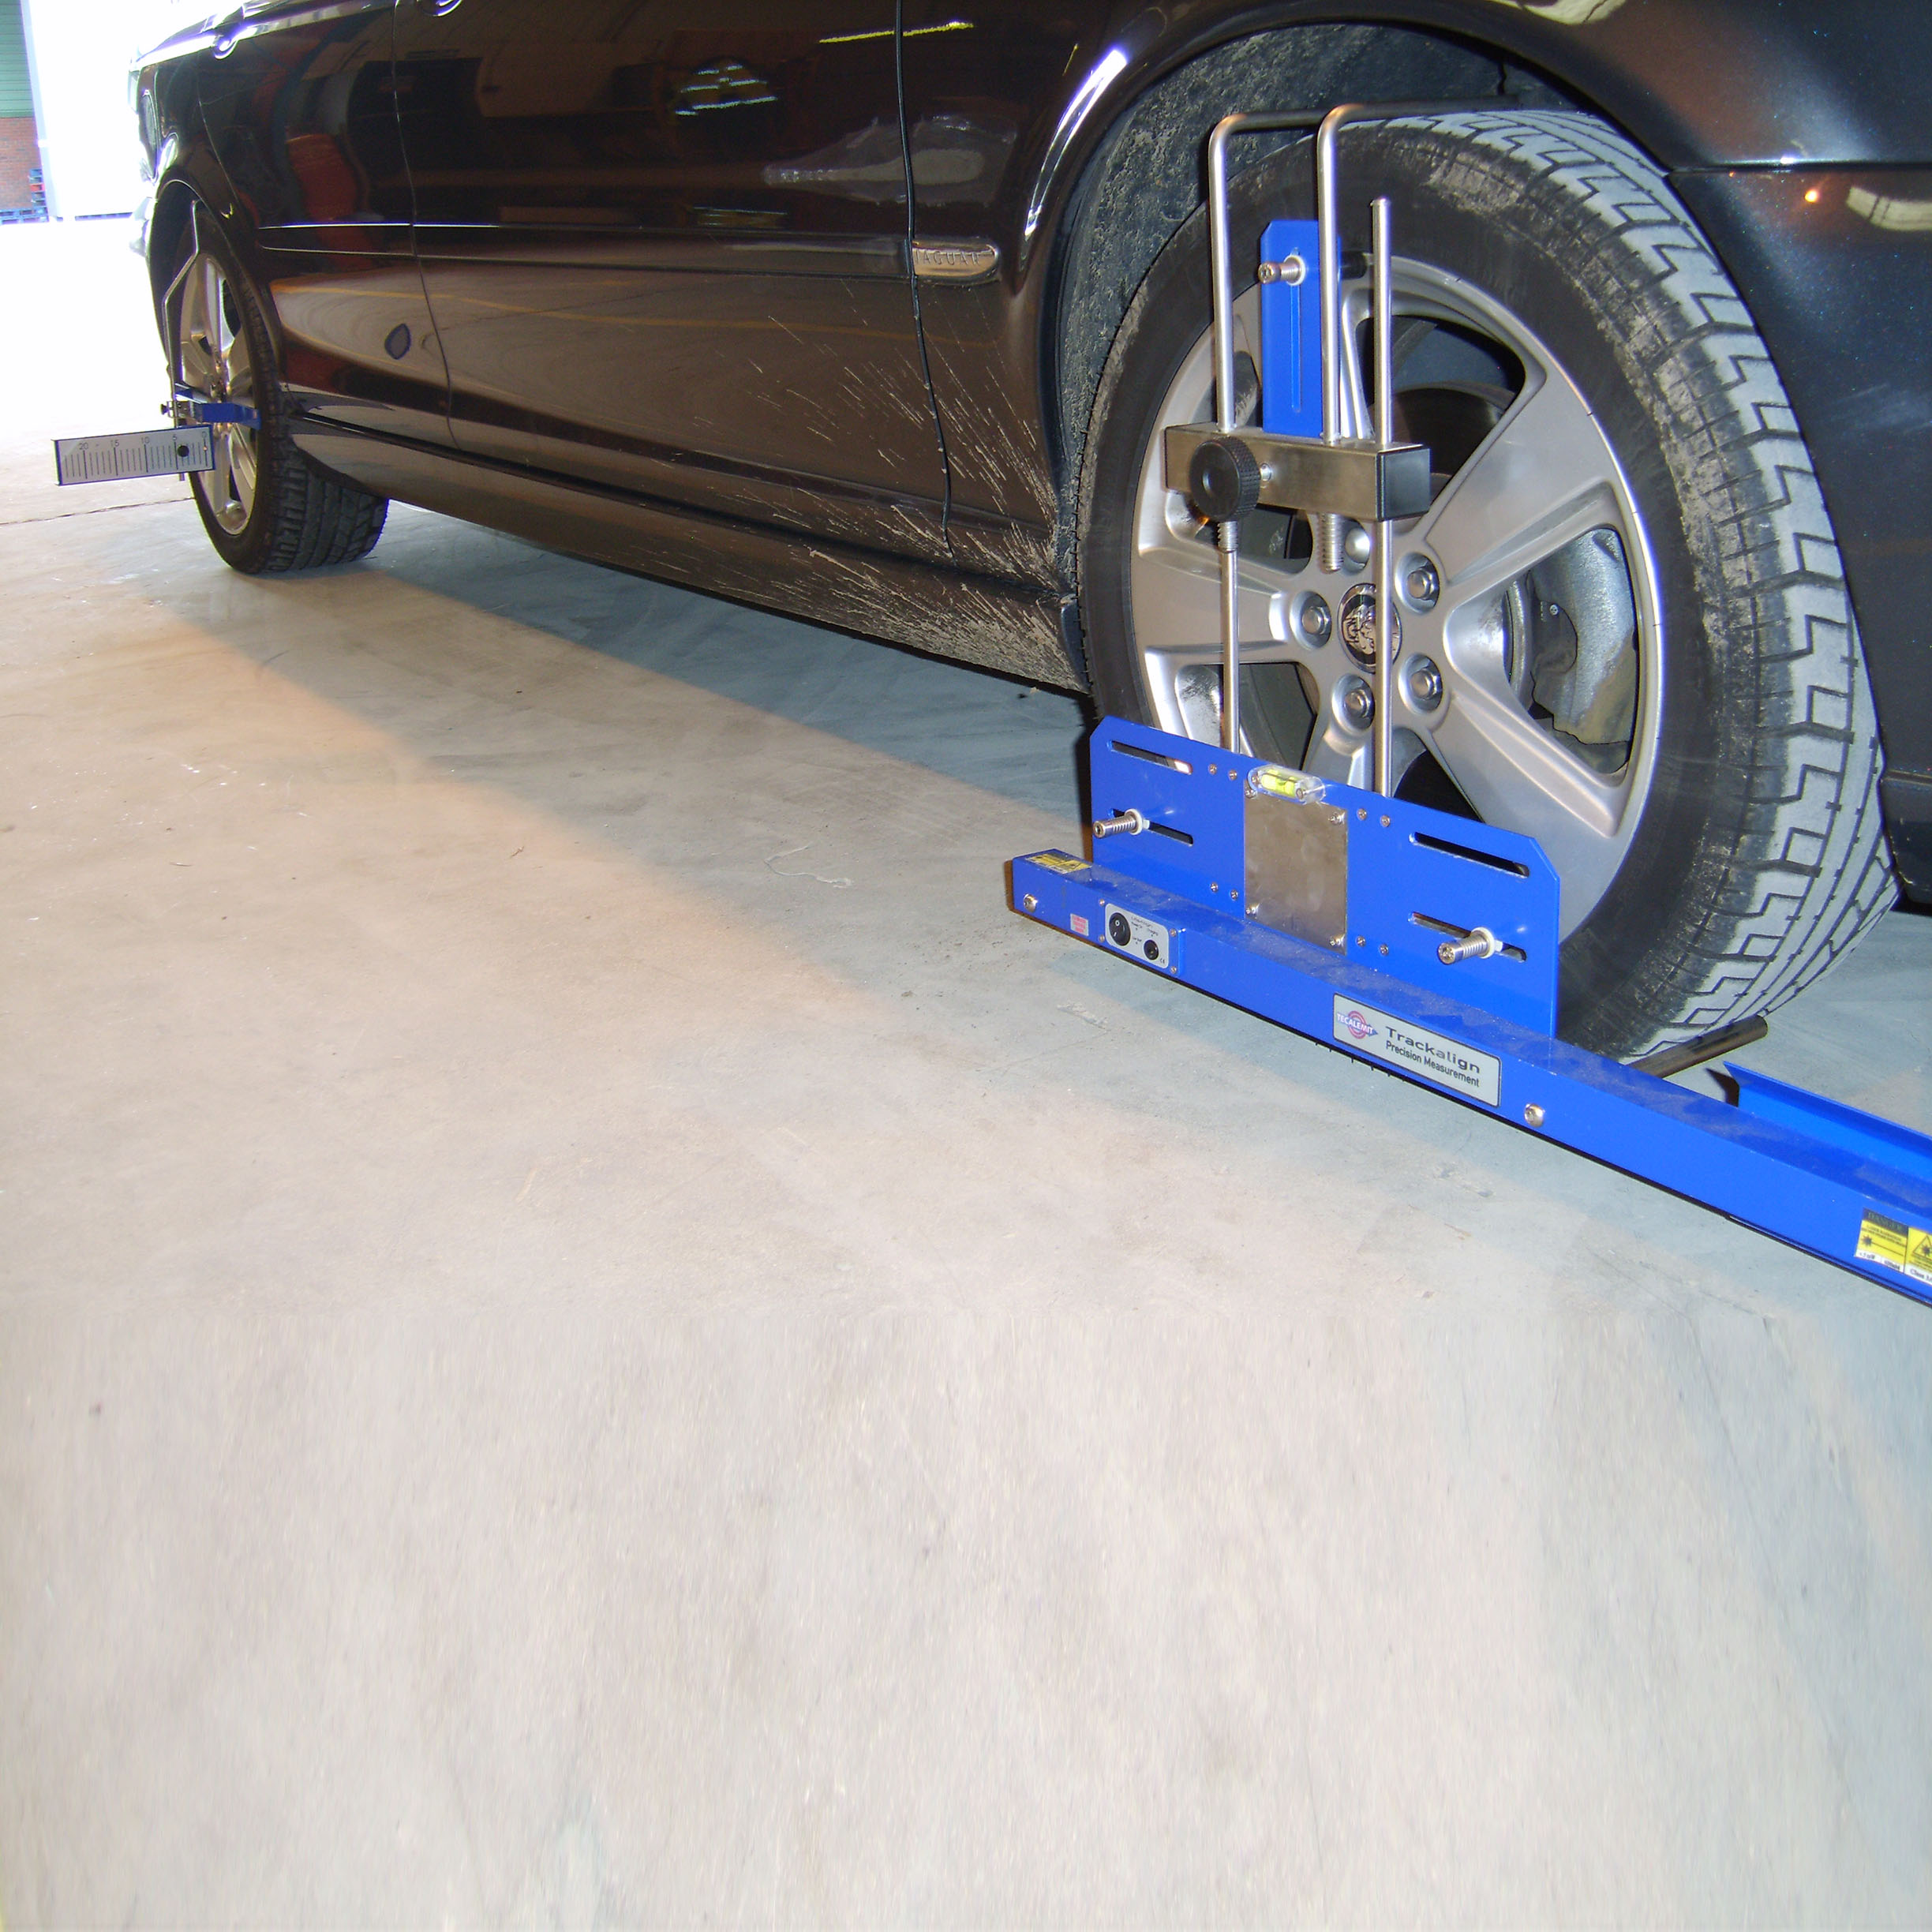 GTR/400/W - 4 Wheel Laser Alignment System